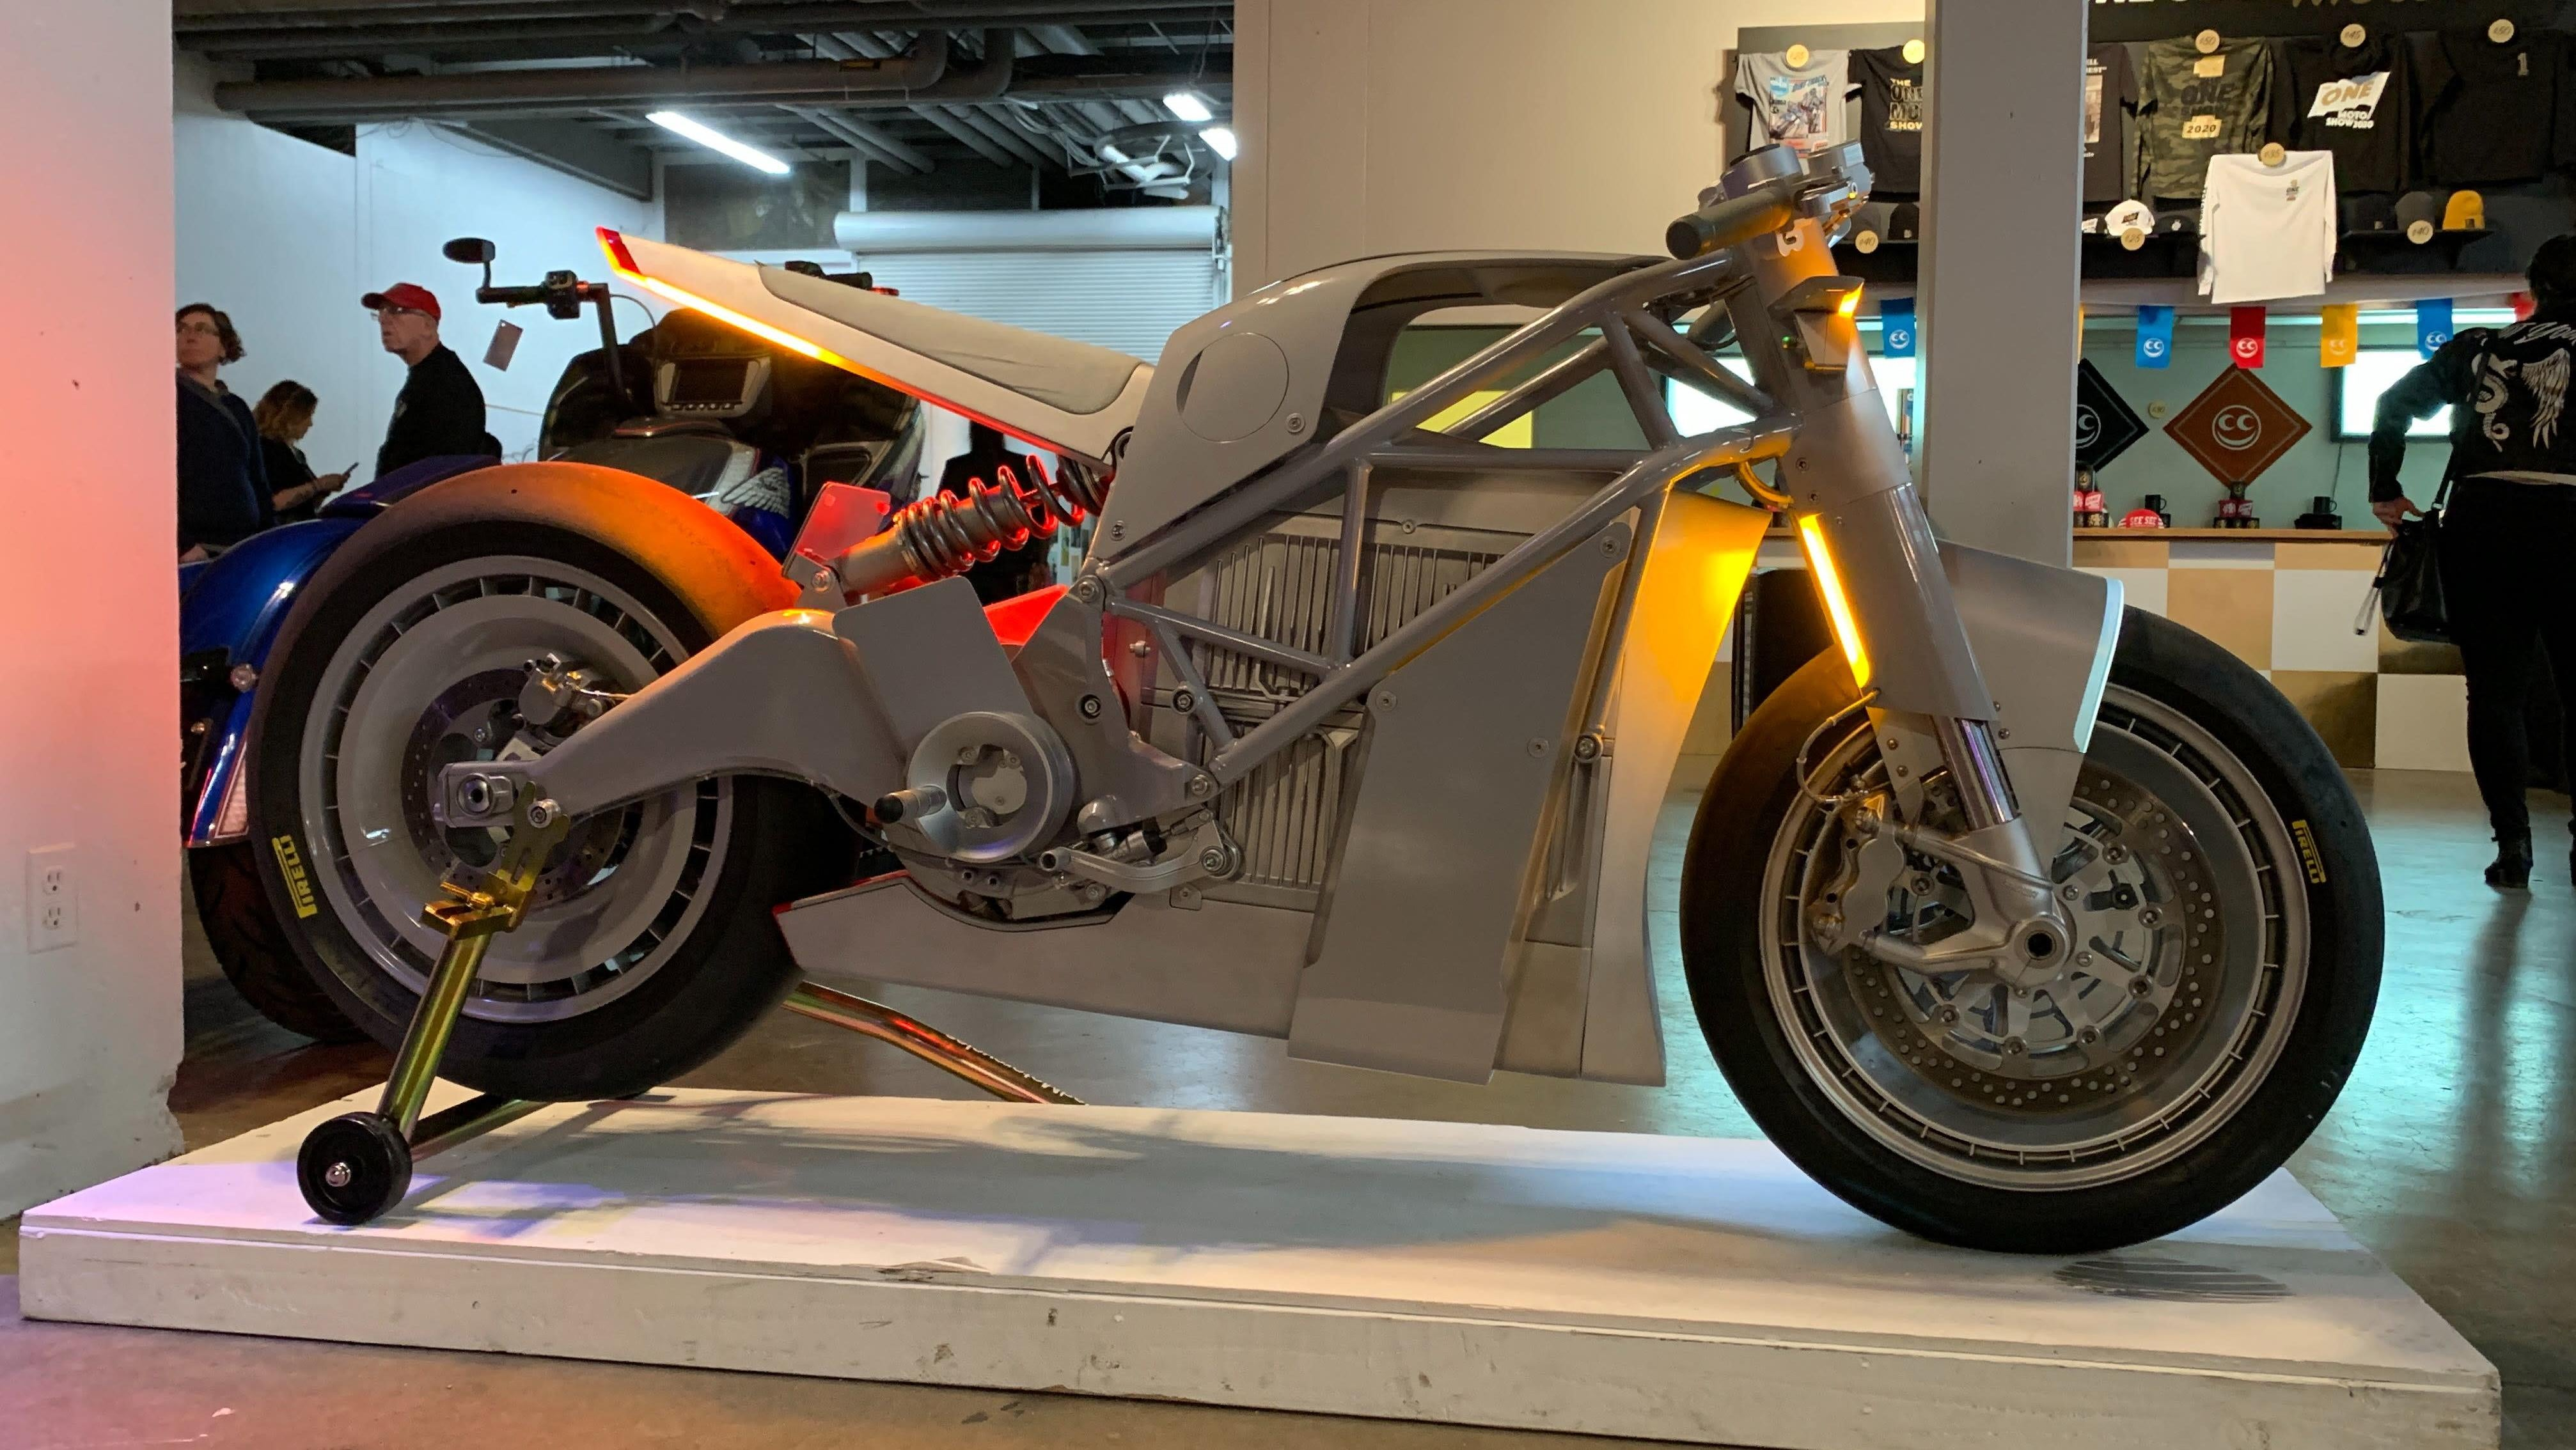 This Is The Coolest Bike I Saw At The One Motorcycle Show